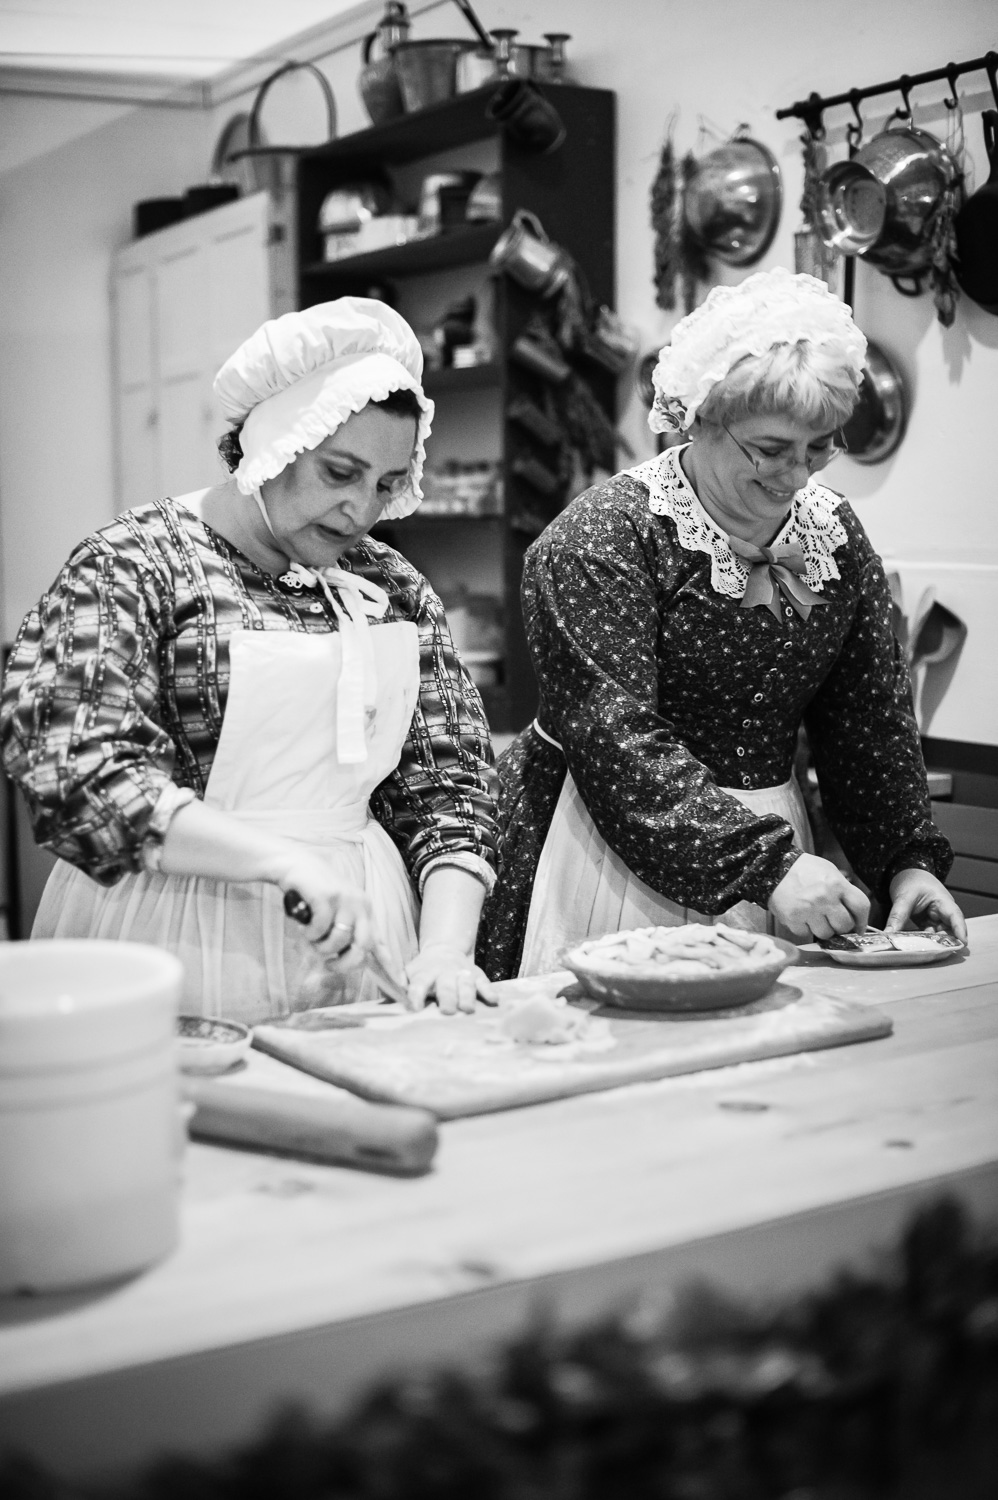 Making Pies // The Great Christmas Dickens Fair // Ashley Petersen Photo